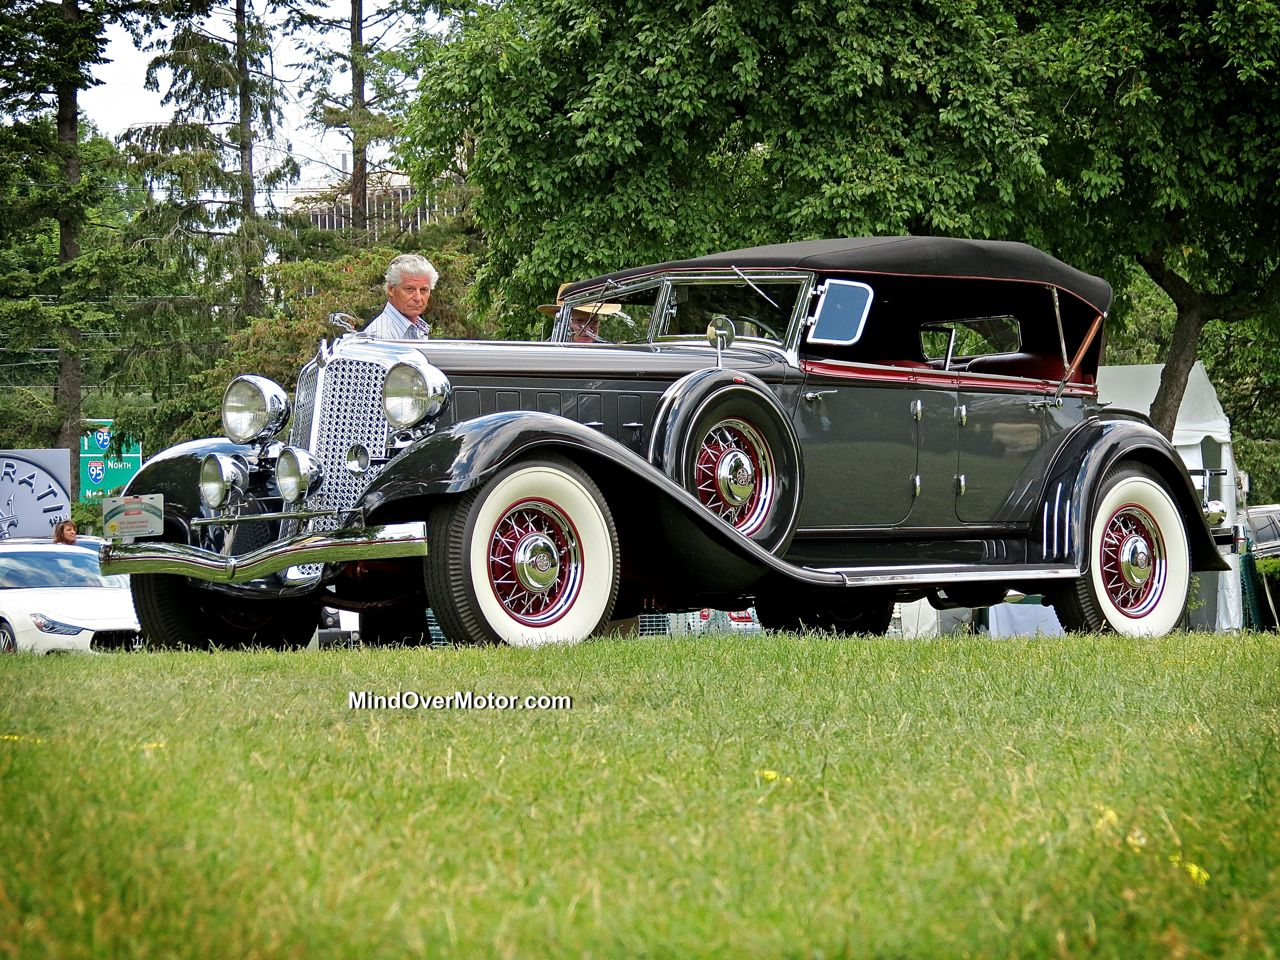 1933 Chrysler Imperial at the Greenwich Concours d'Elegance